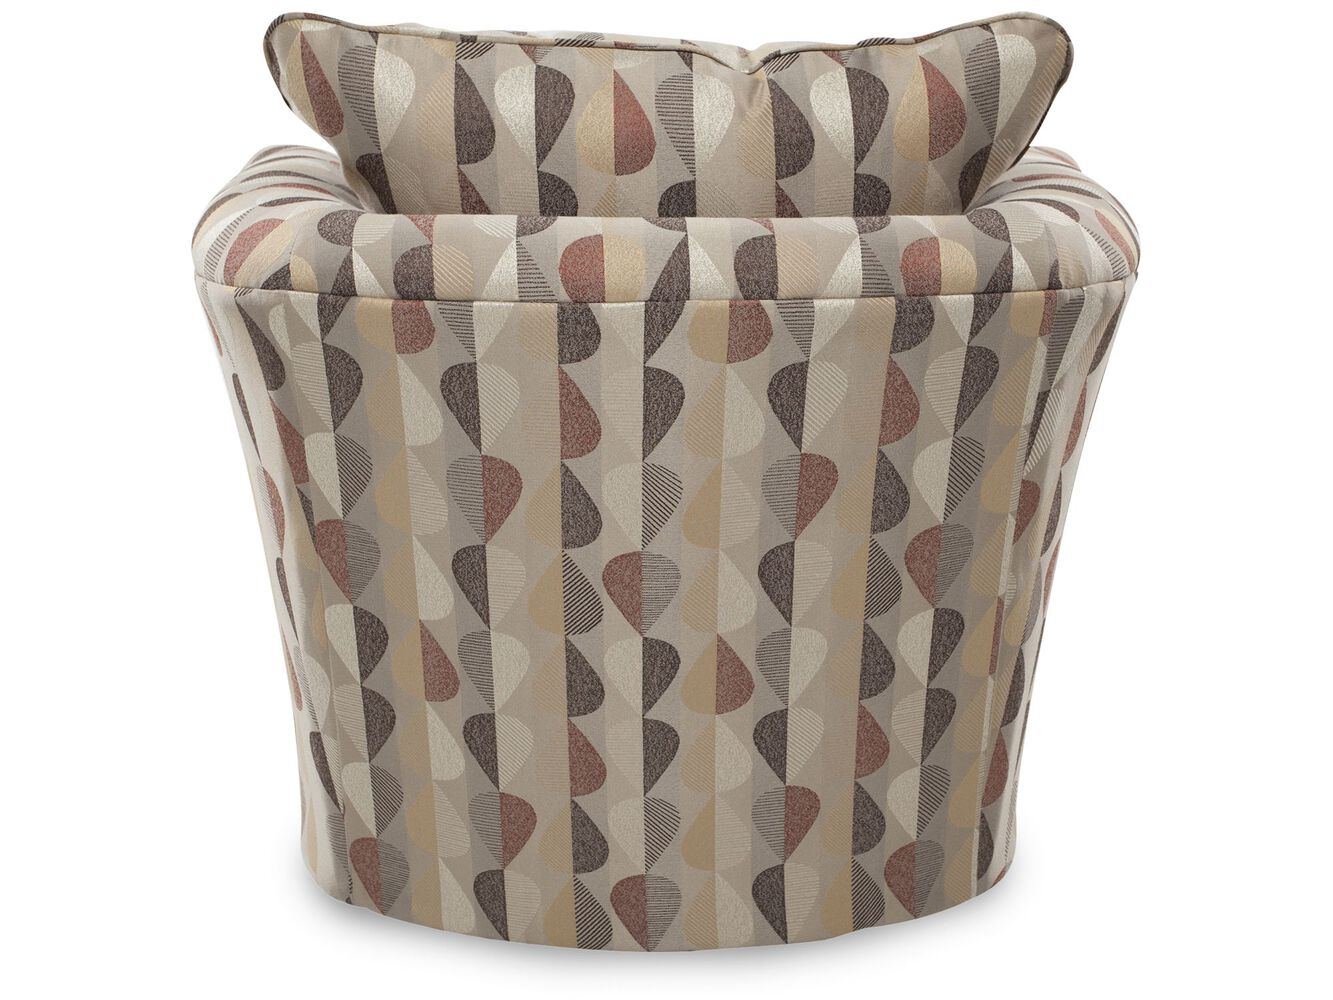 Patterned Contemporary Swivel Chair | Mathis Brothers Furniture